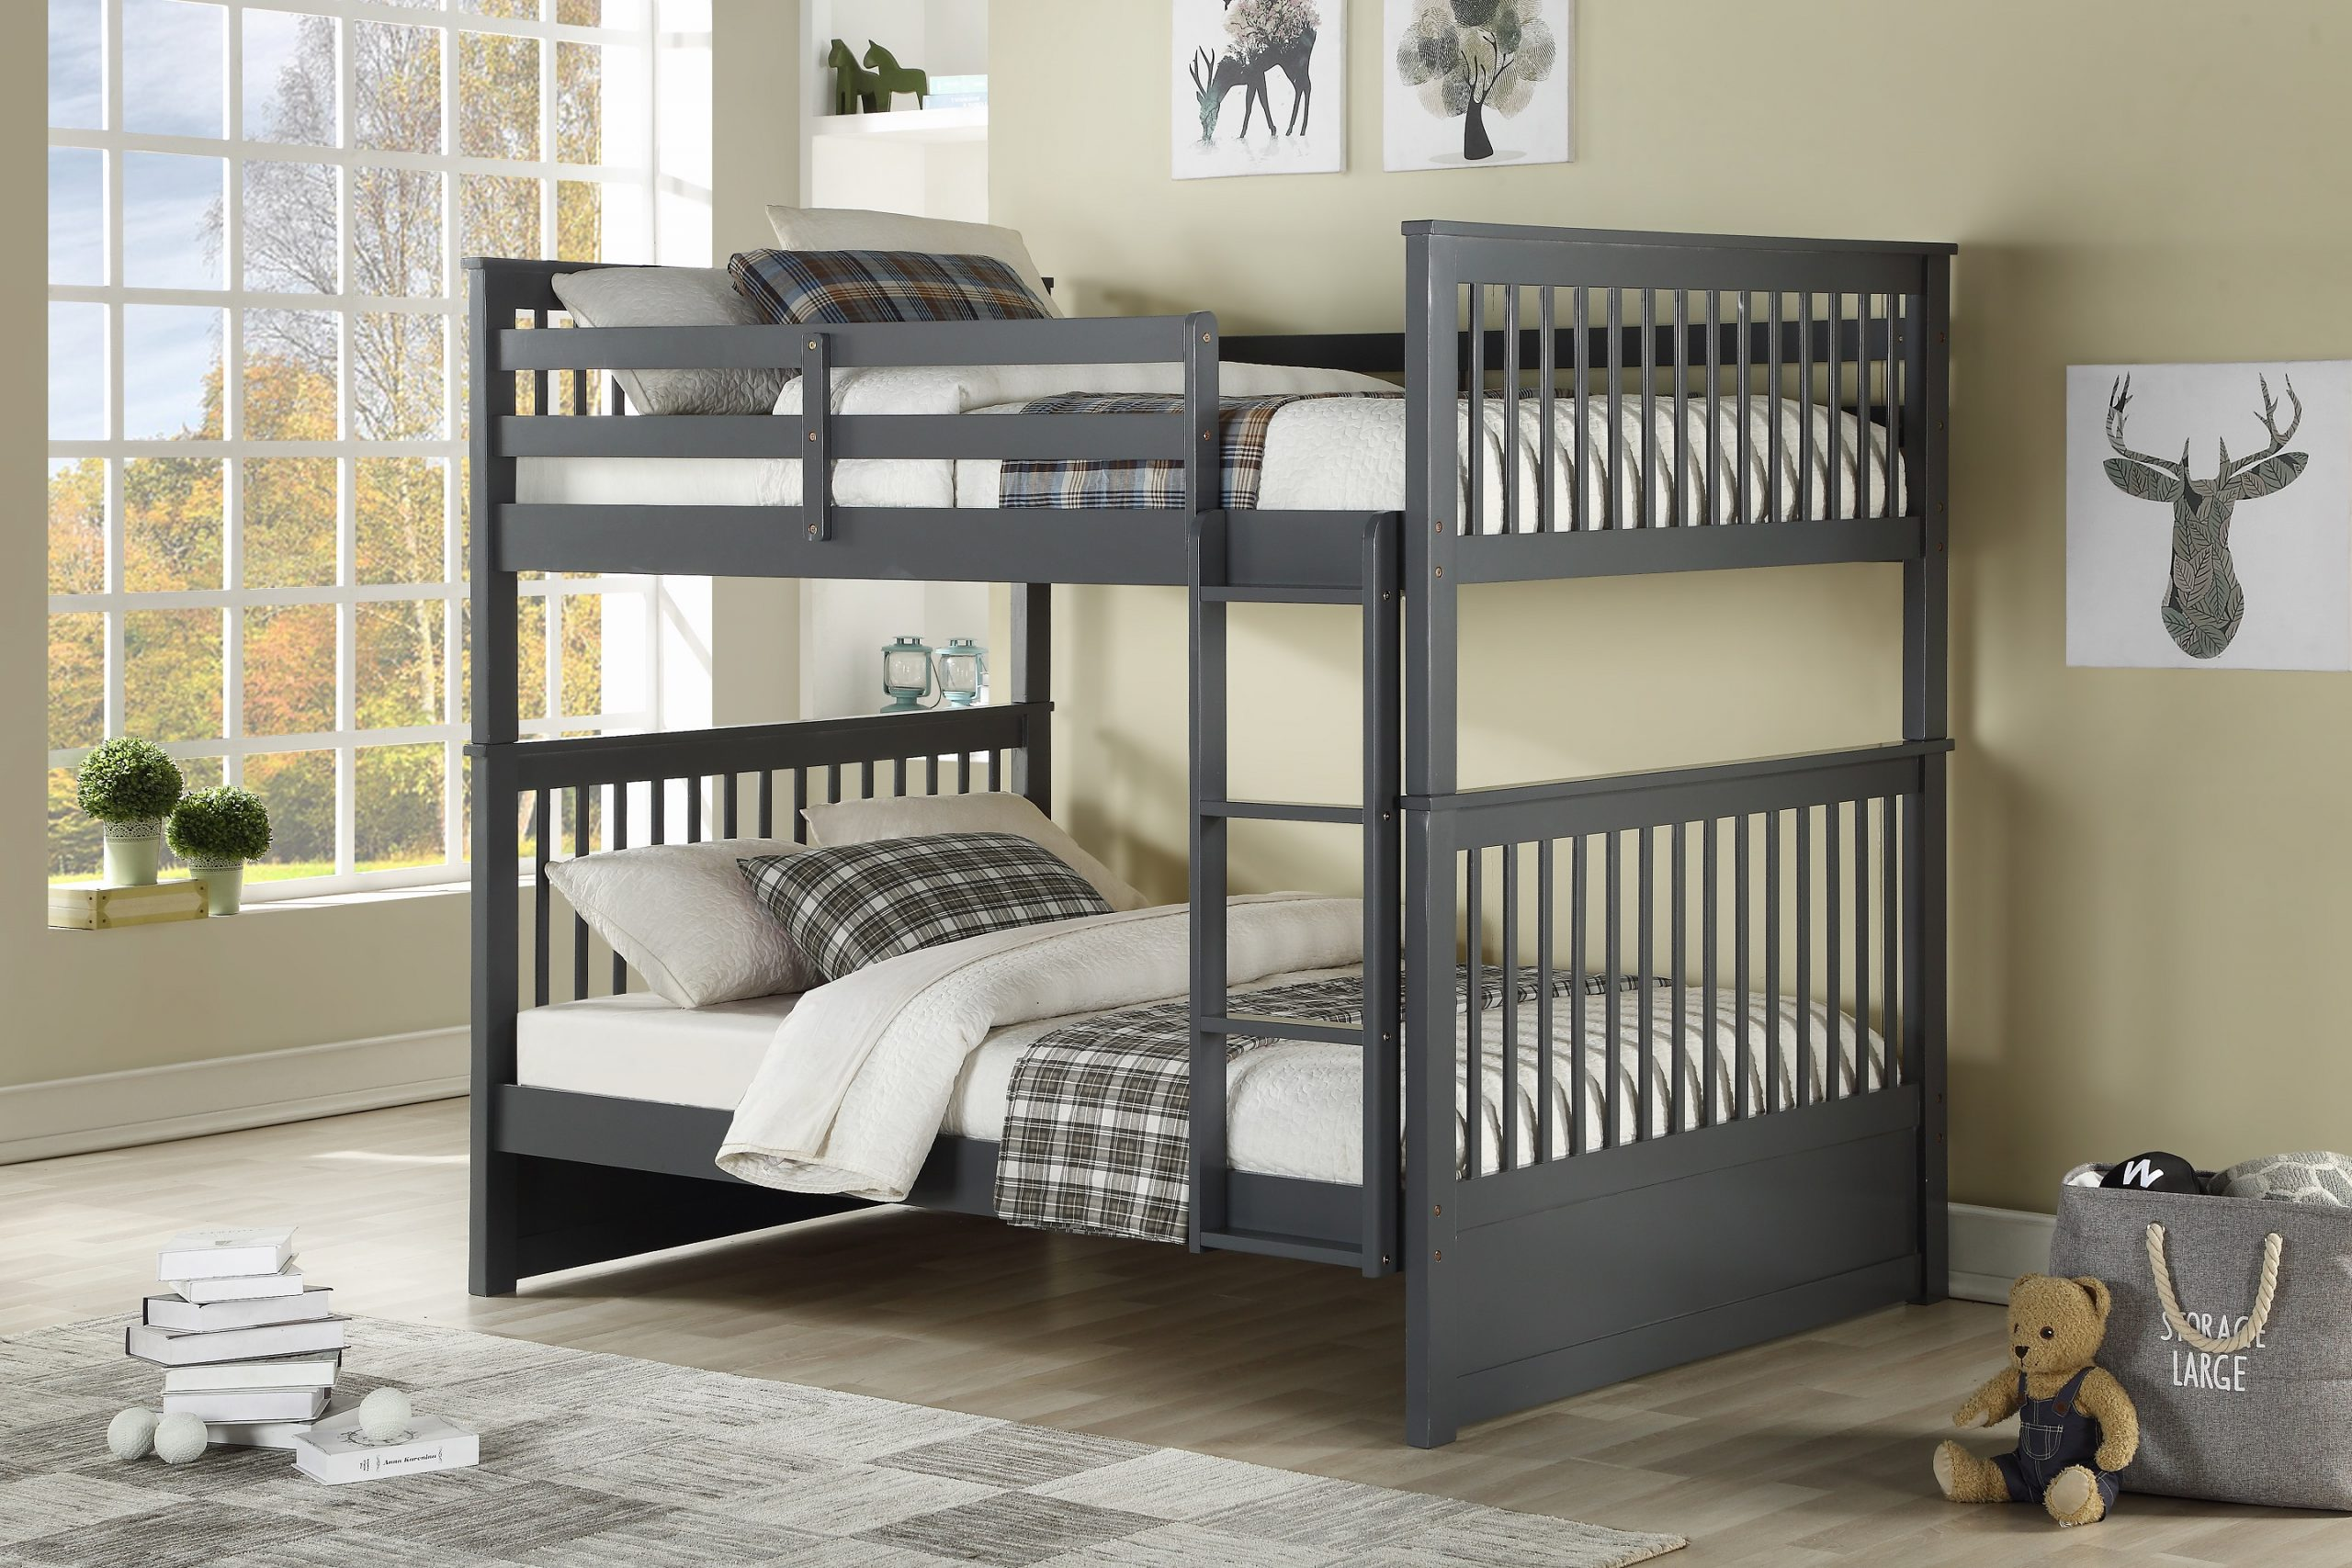 Picture of: Ifdc B 123 E Double Over Double Bunk Bed Furniture Trends